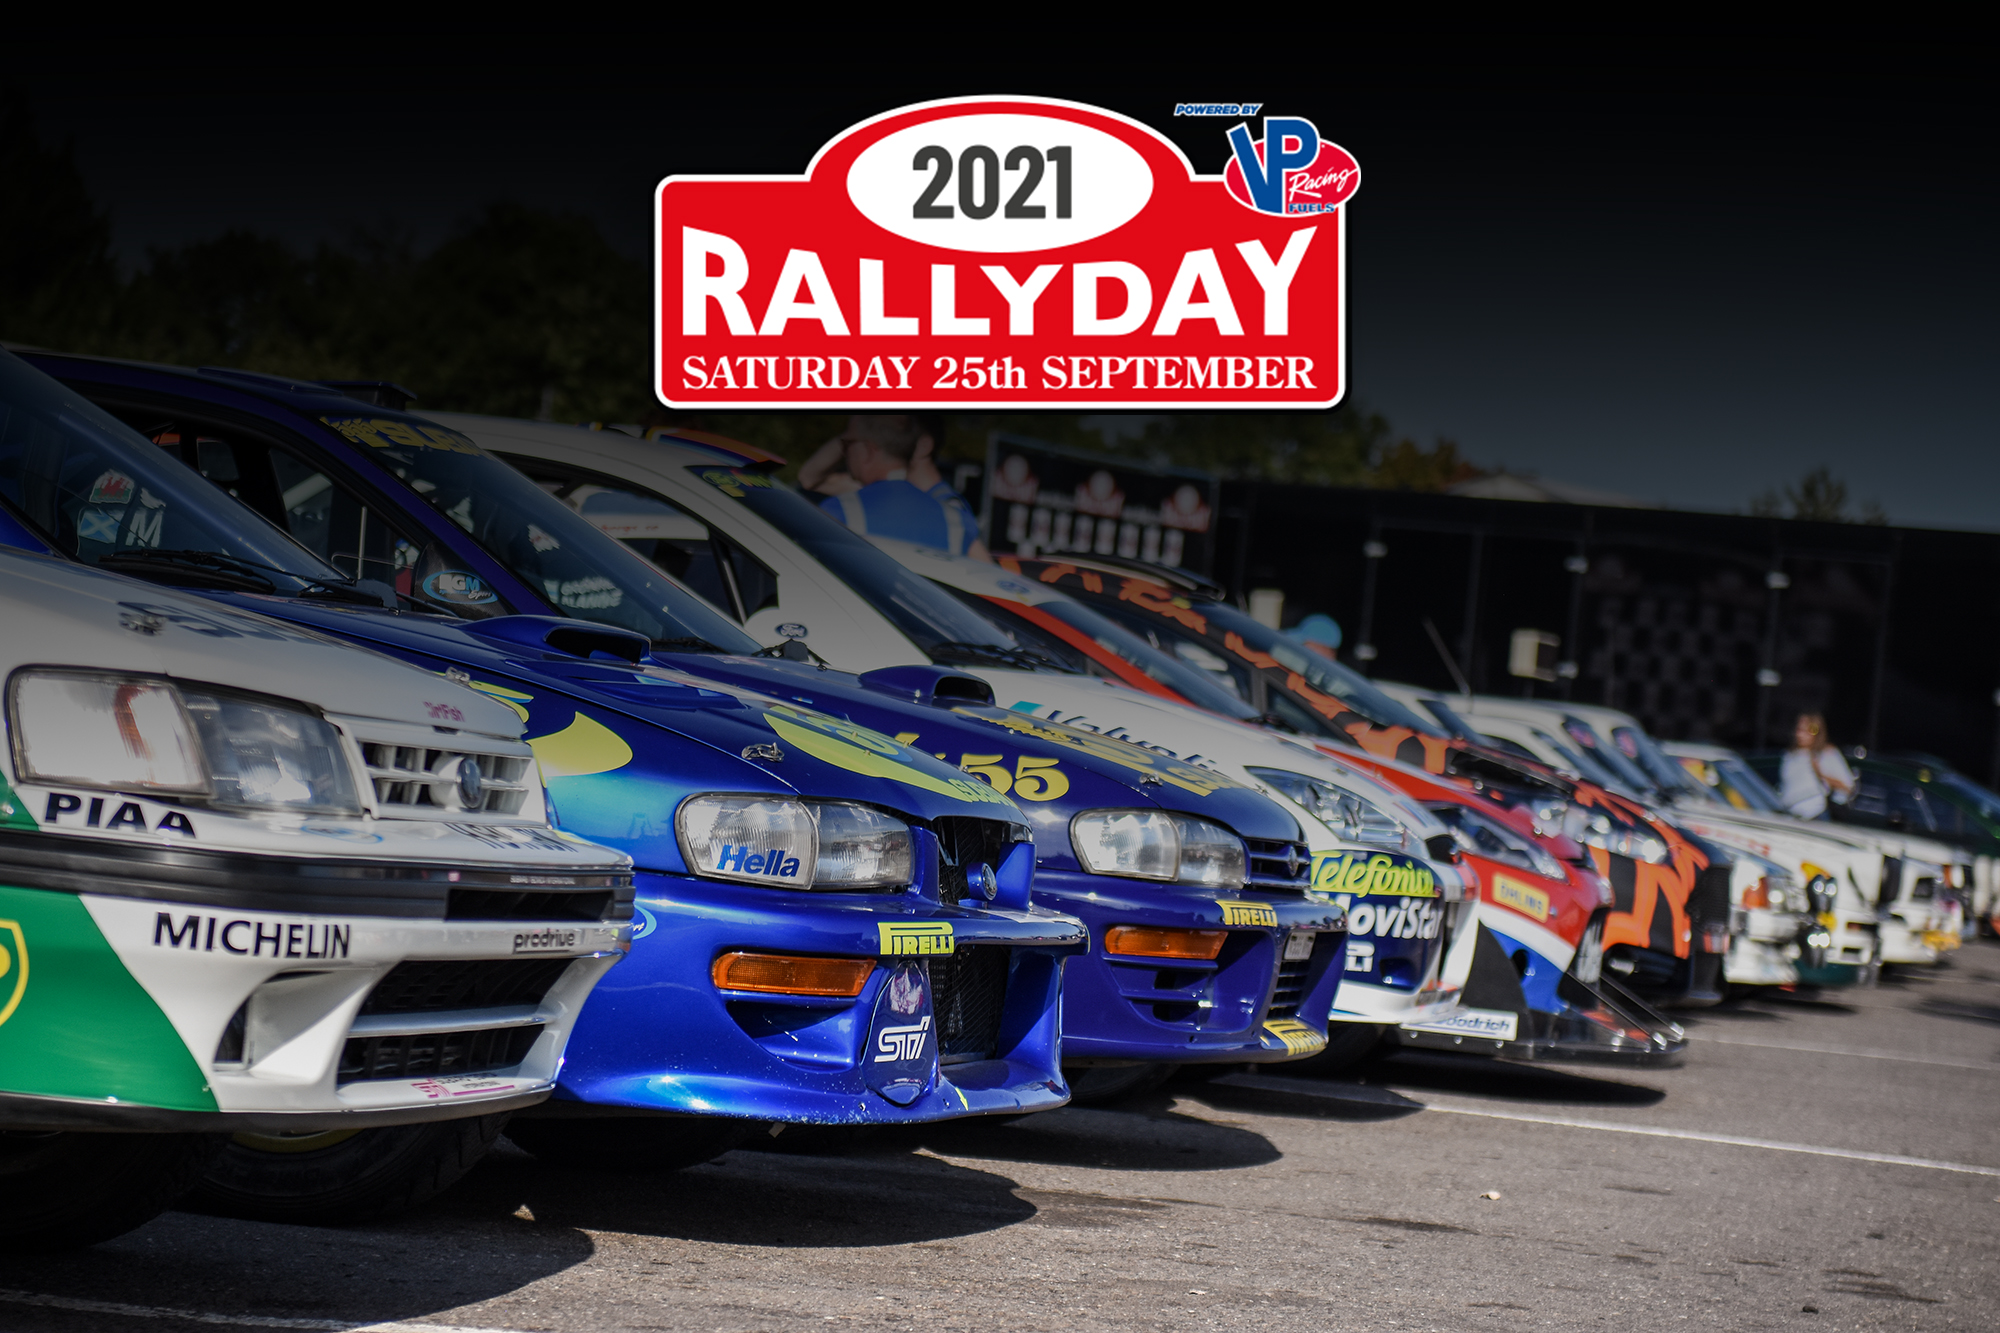 PLENTY TO CELEBRATE AS RALLYDAY RETURNS WITH SEPTEMBER 2021 DATE